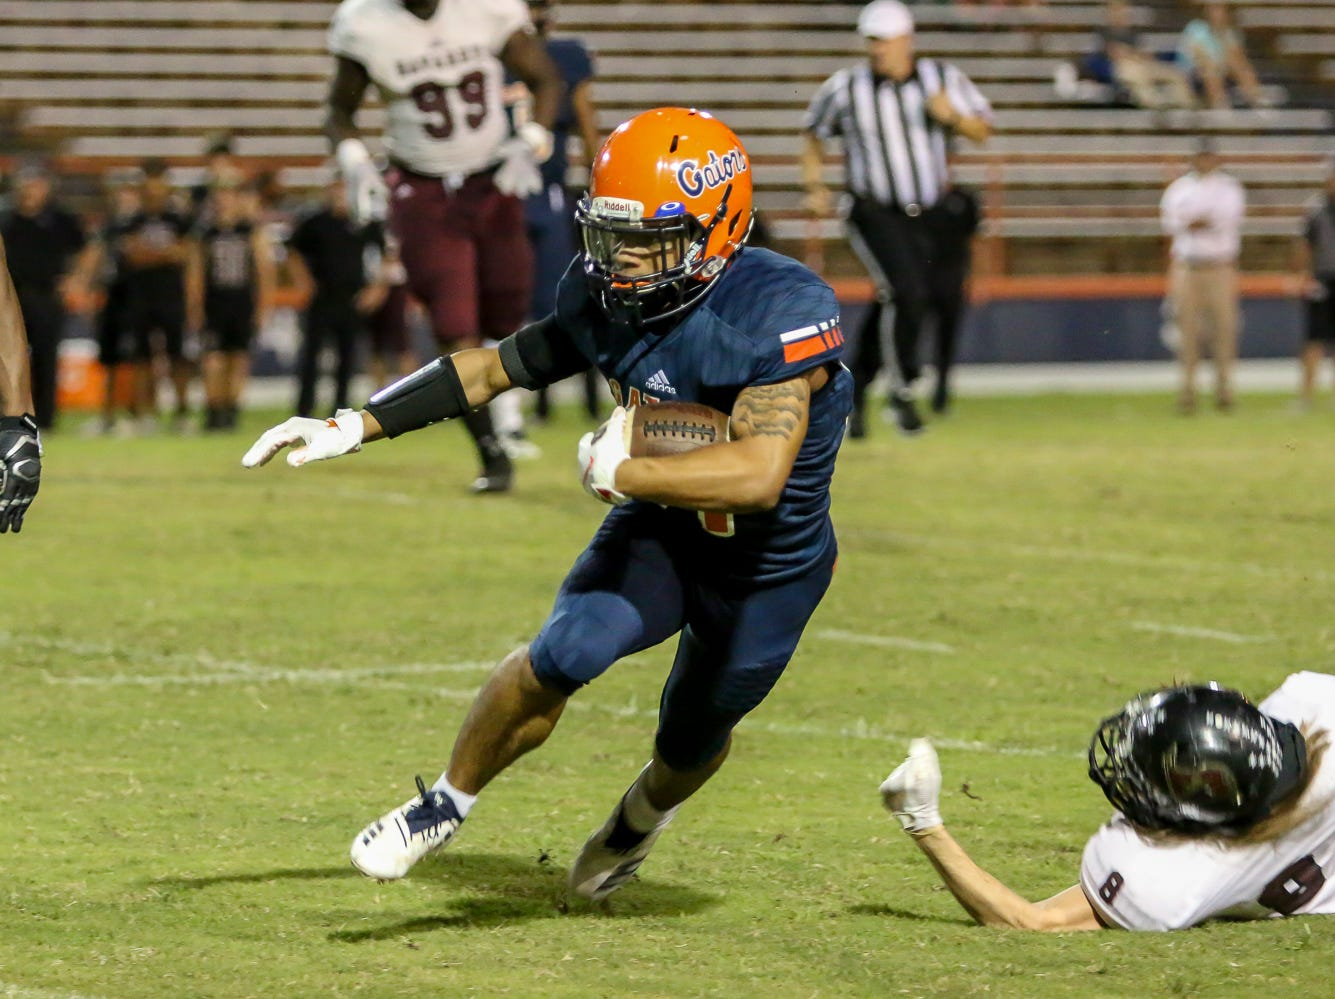 Escambia's Jaylen Blackmon (14) cuts to the outside against the Navarre defense in the homecoming game at Escambia High School on Friday, October 5, 2018.